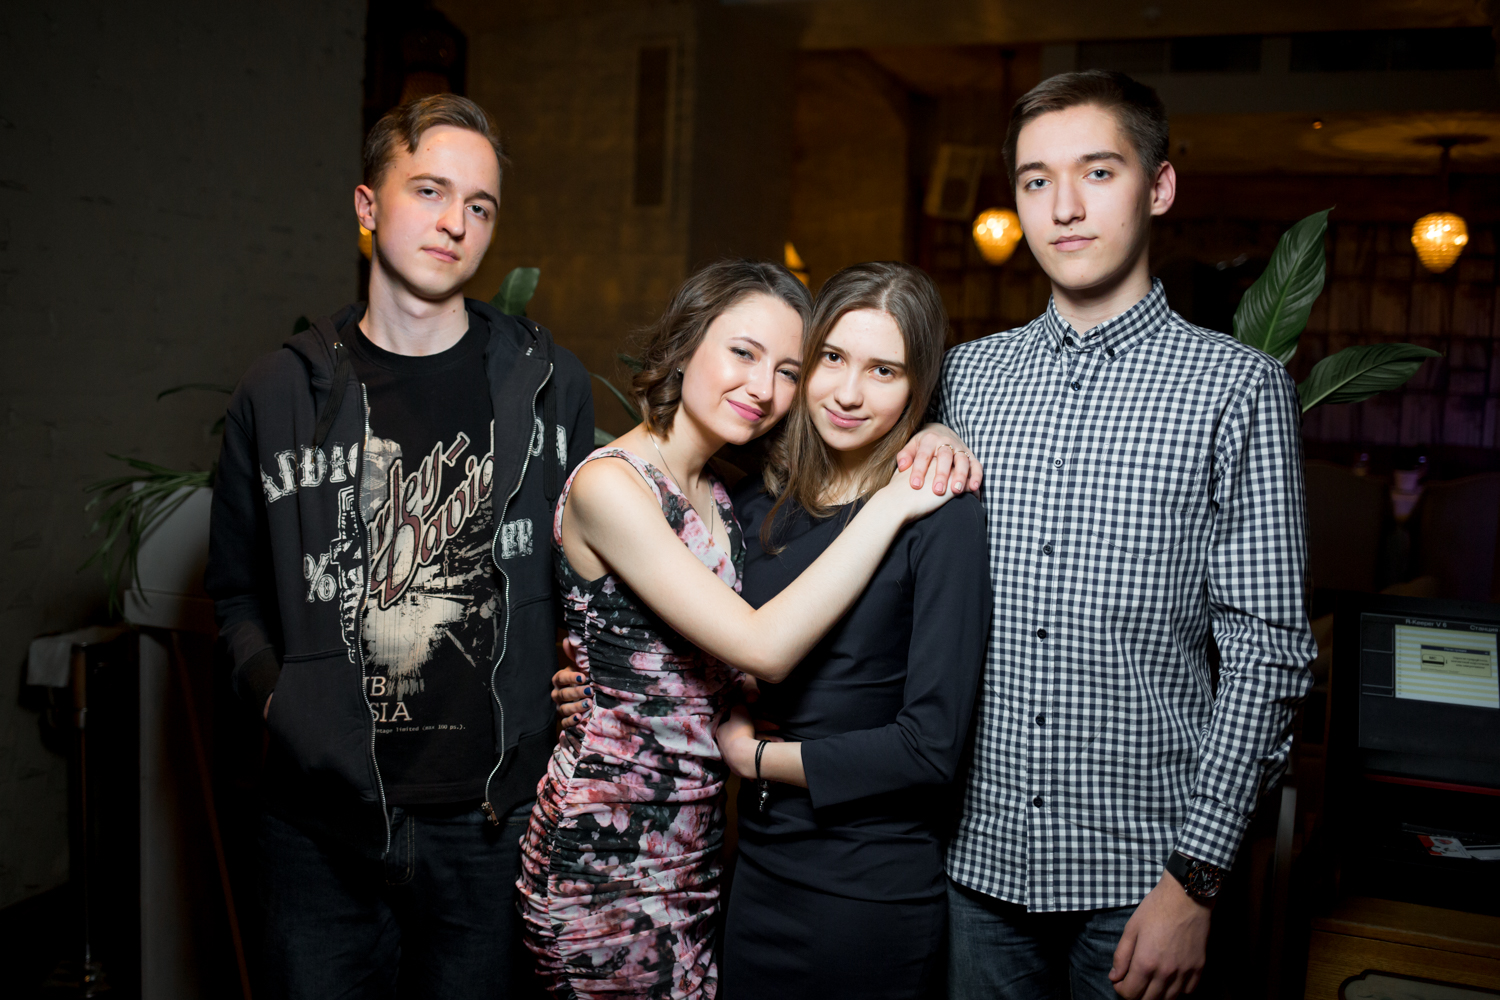 The Сад 17.03.18-54